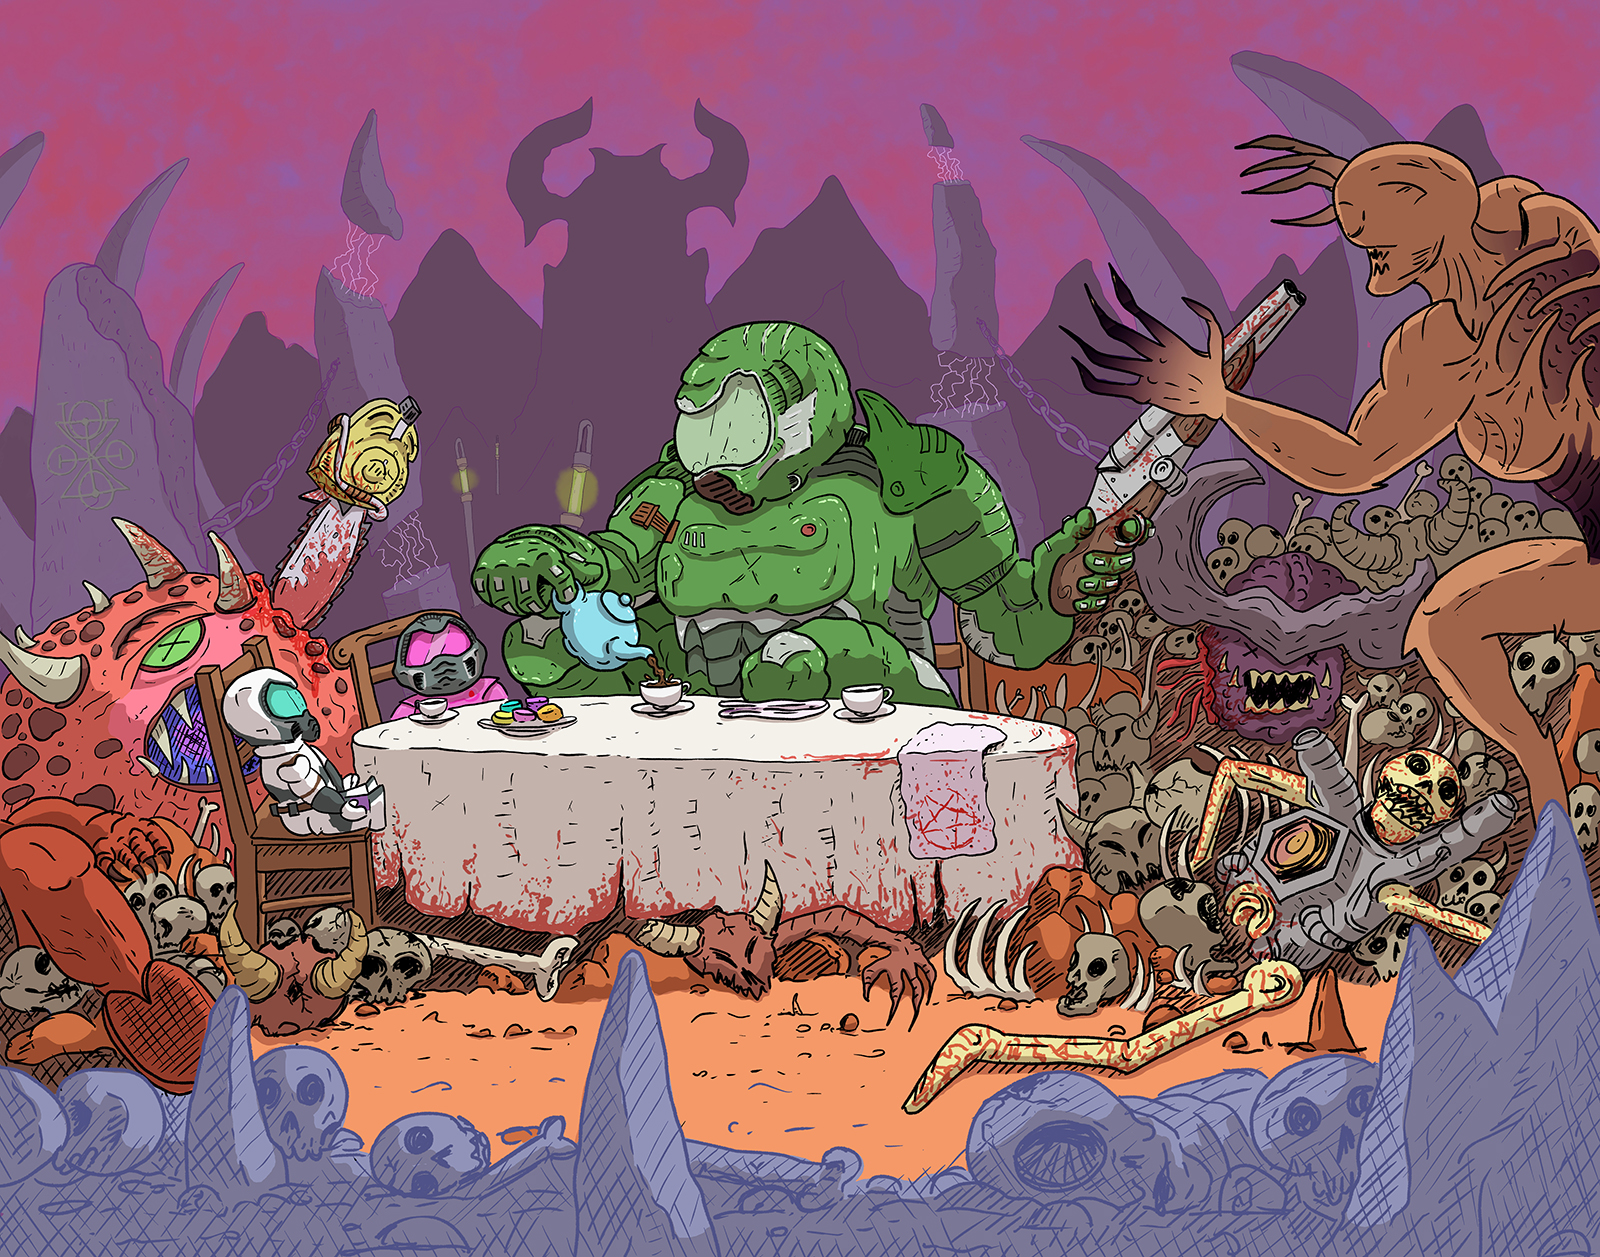 The Doom Slayer at a tea party in hell.